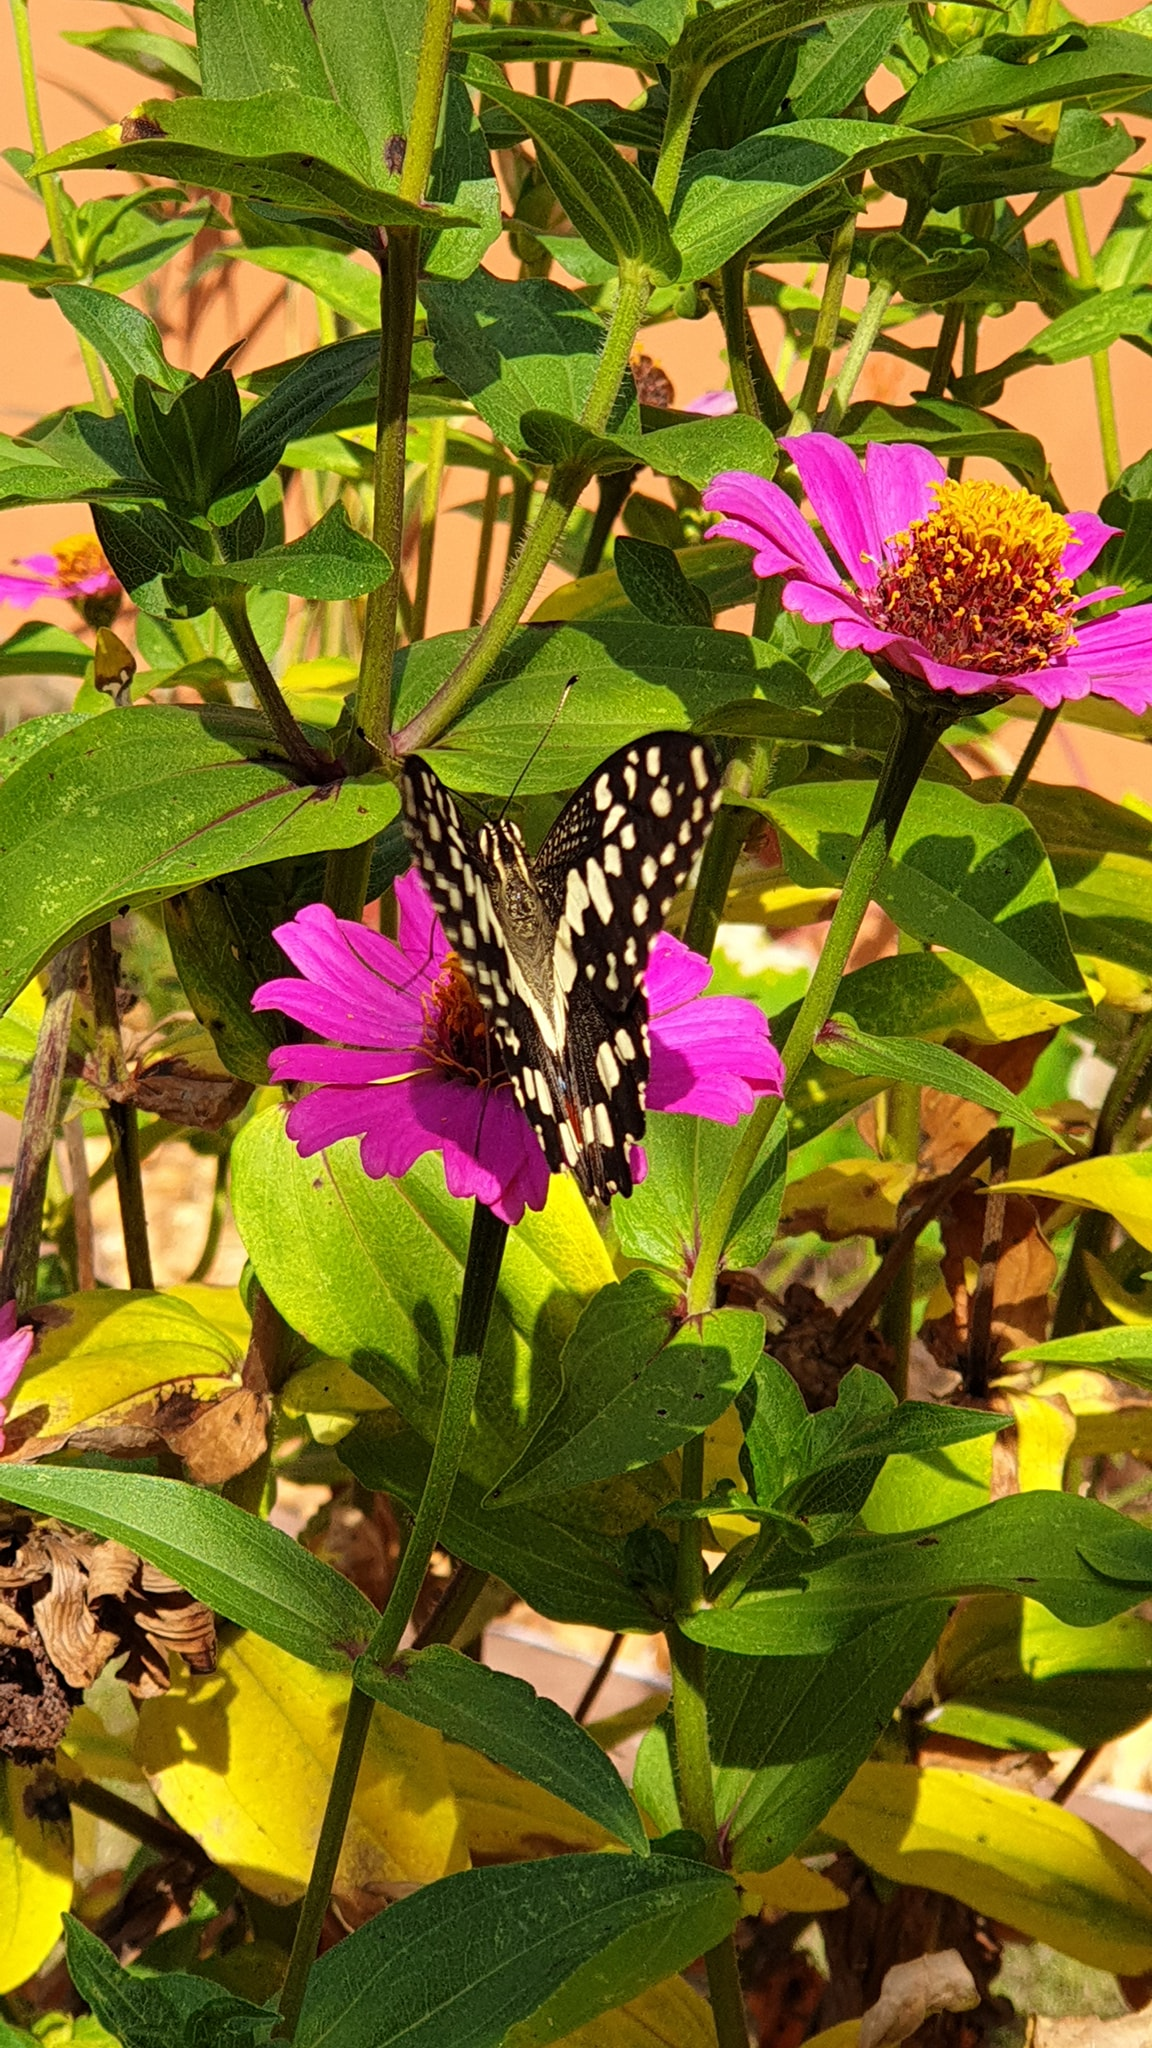 butterfly and flower zinias.jpg